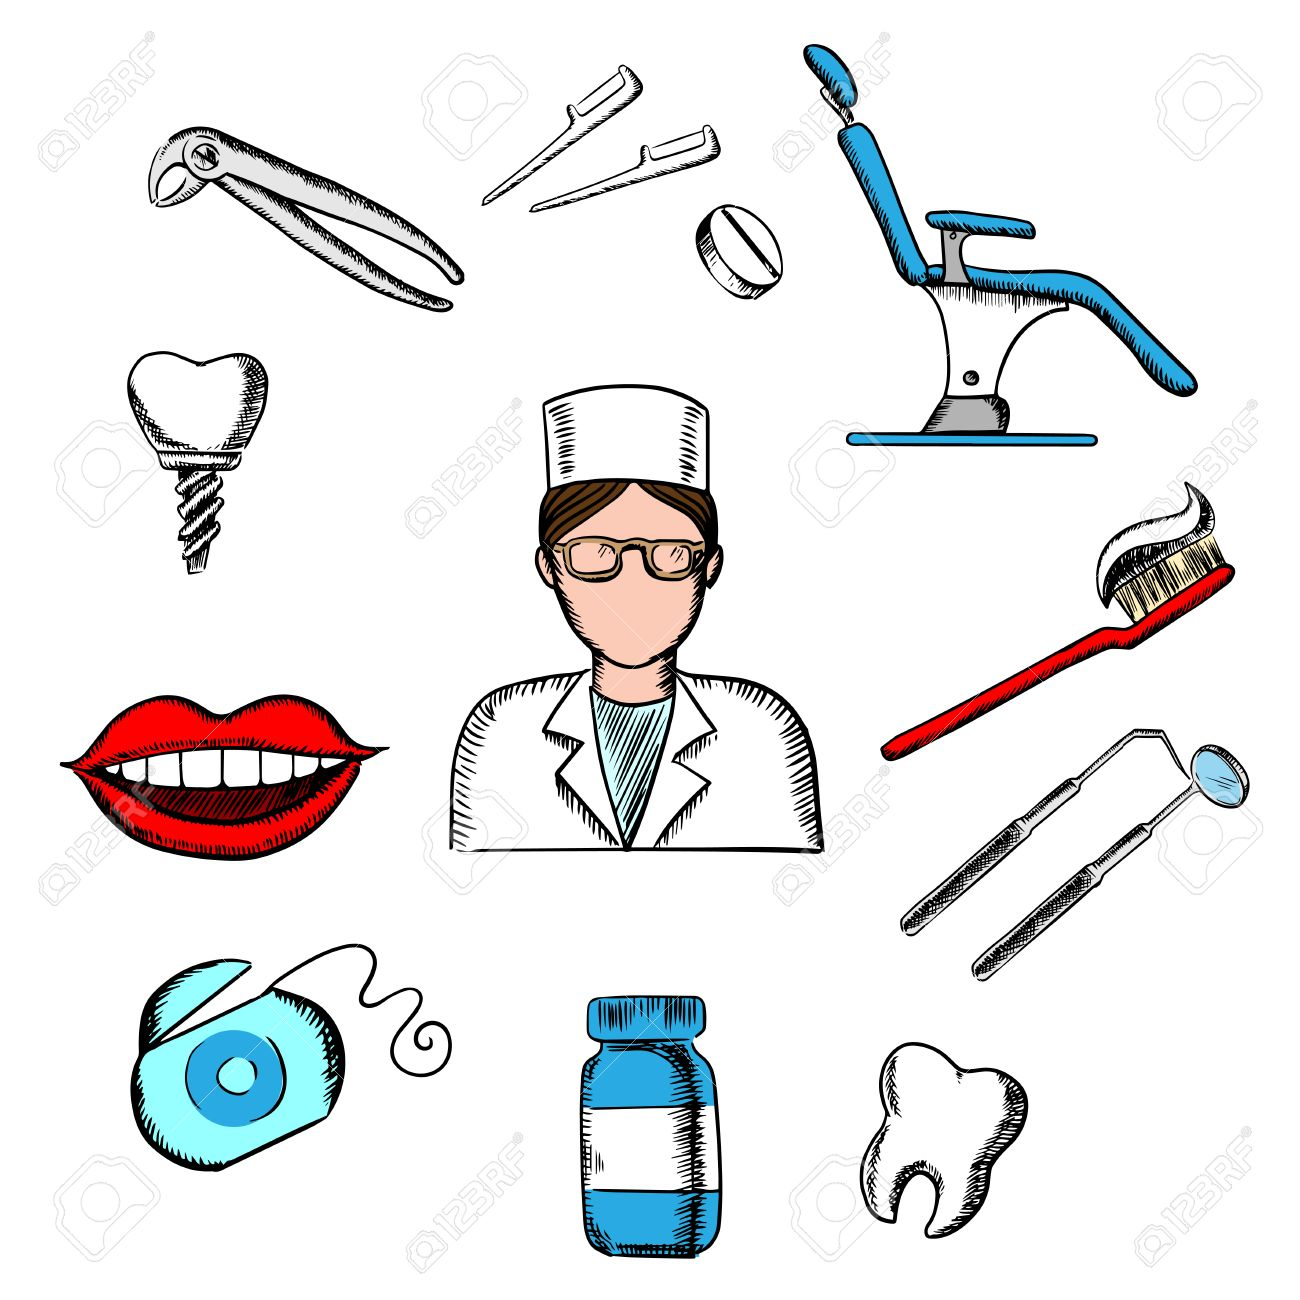 Dentistry Design With Female Dentist In Glasses And White Uniform Dental Equipment Hygiene Icons